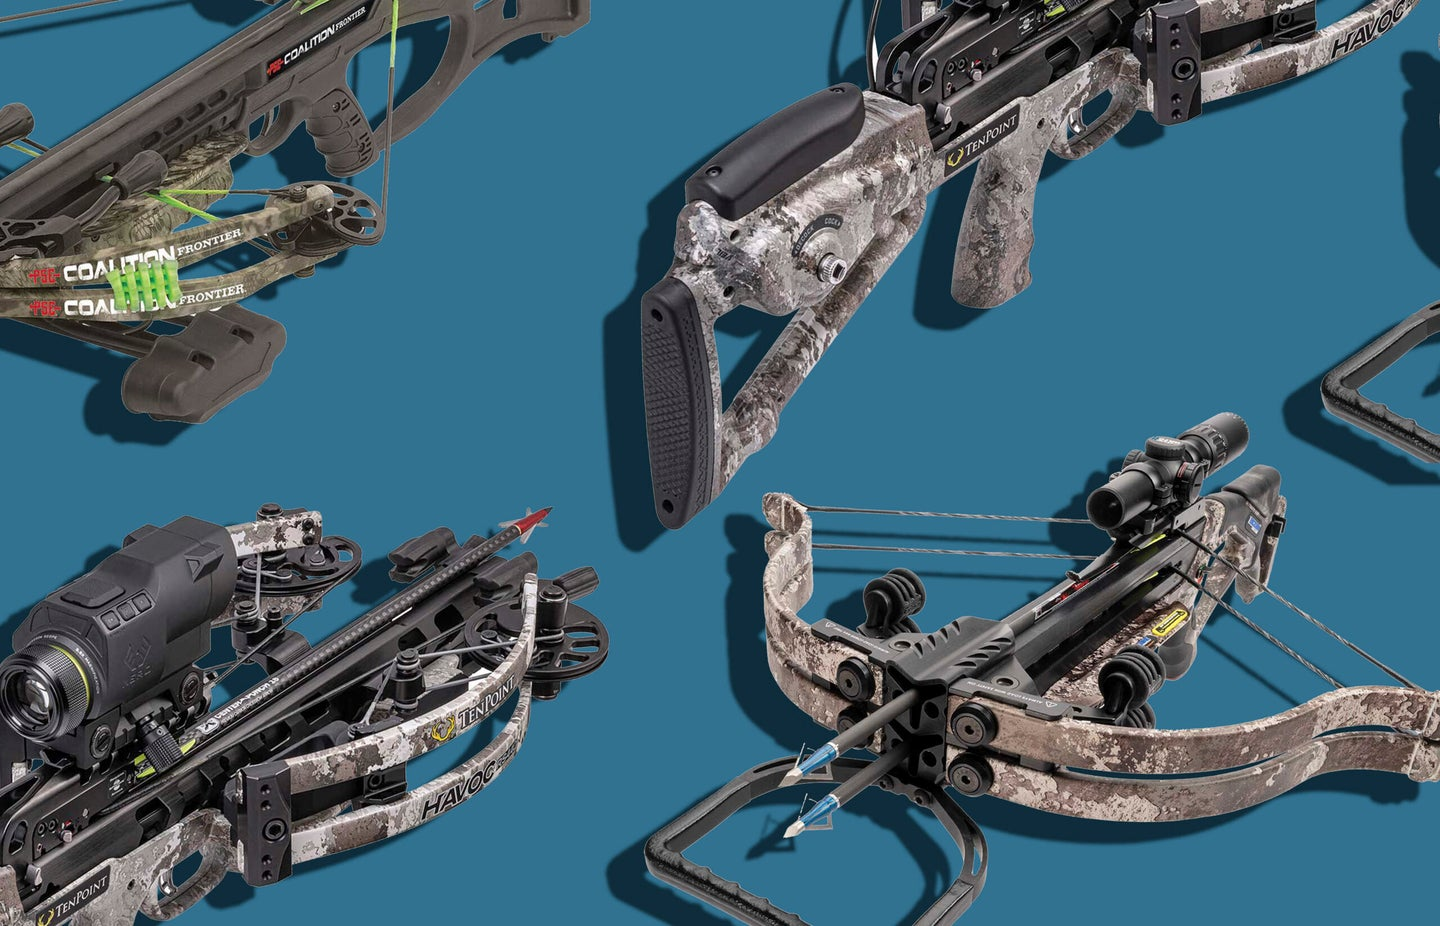 Four crossbow models cocked with arrows on a blue background.